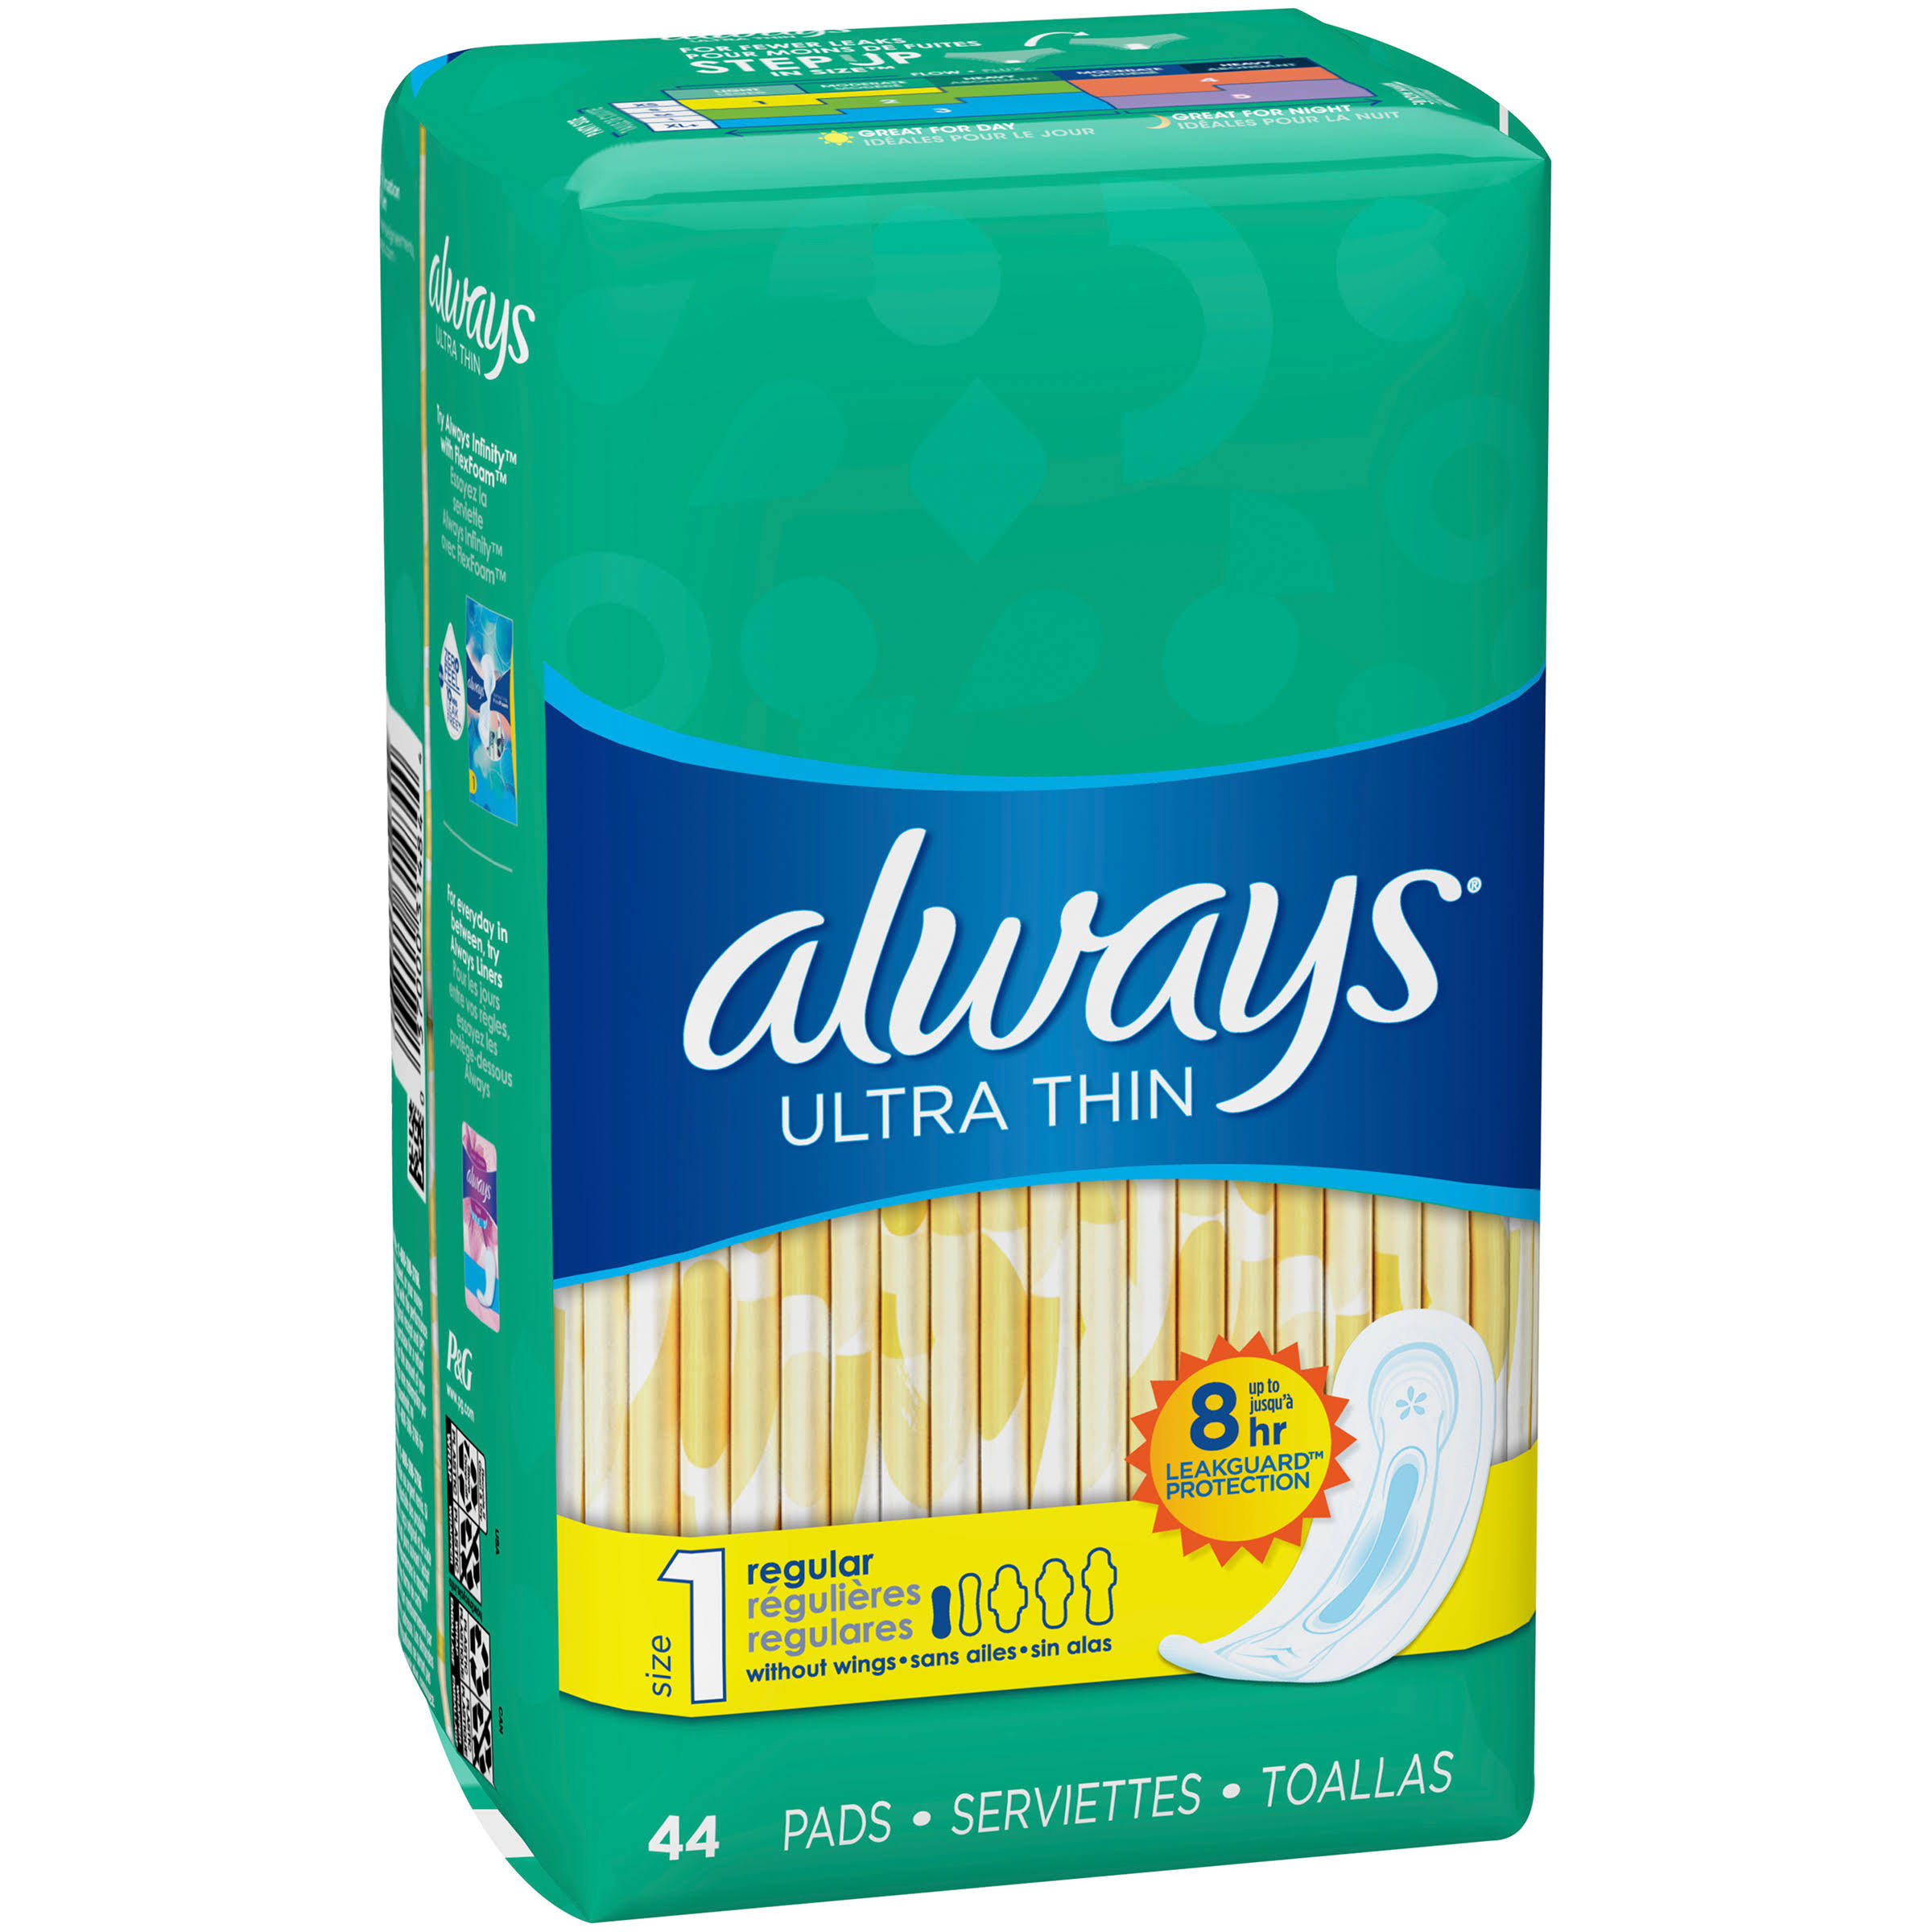 Always Ultra Thin Regular Without Wings Thin Pads - 44 Pack